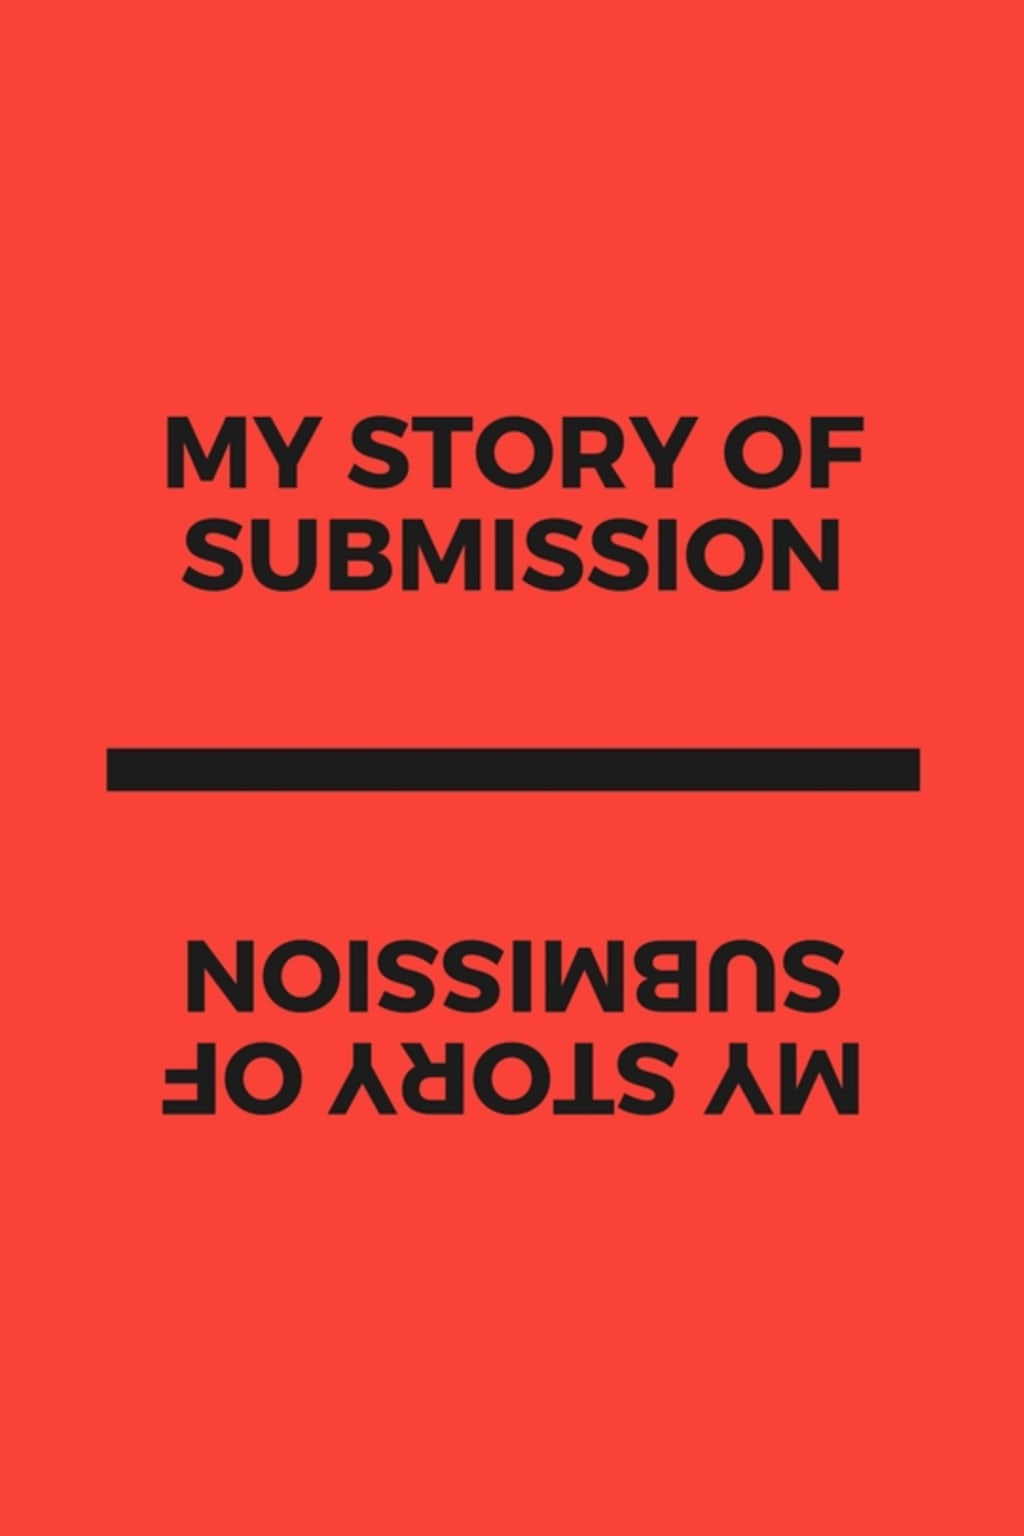 My Story of Submission